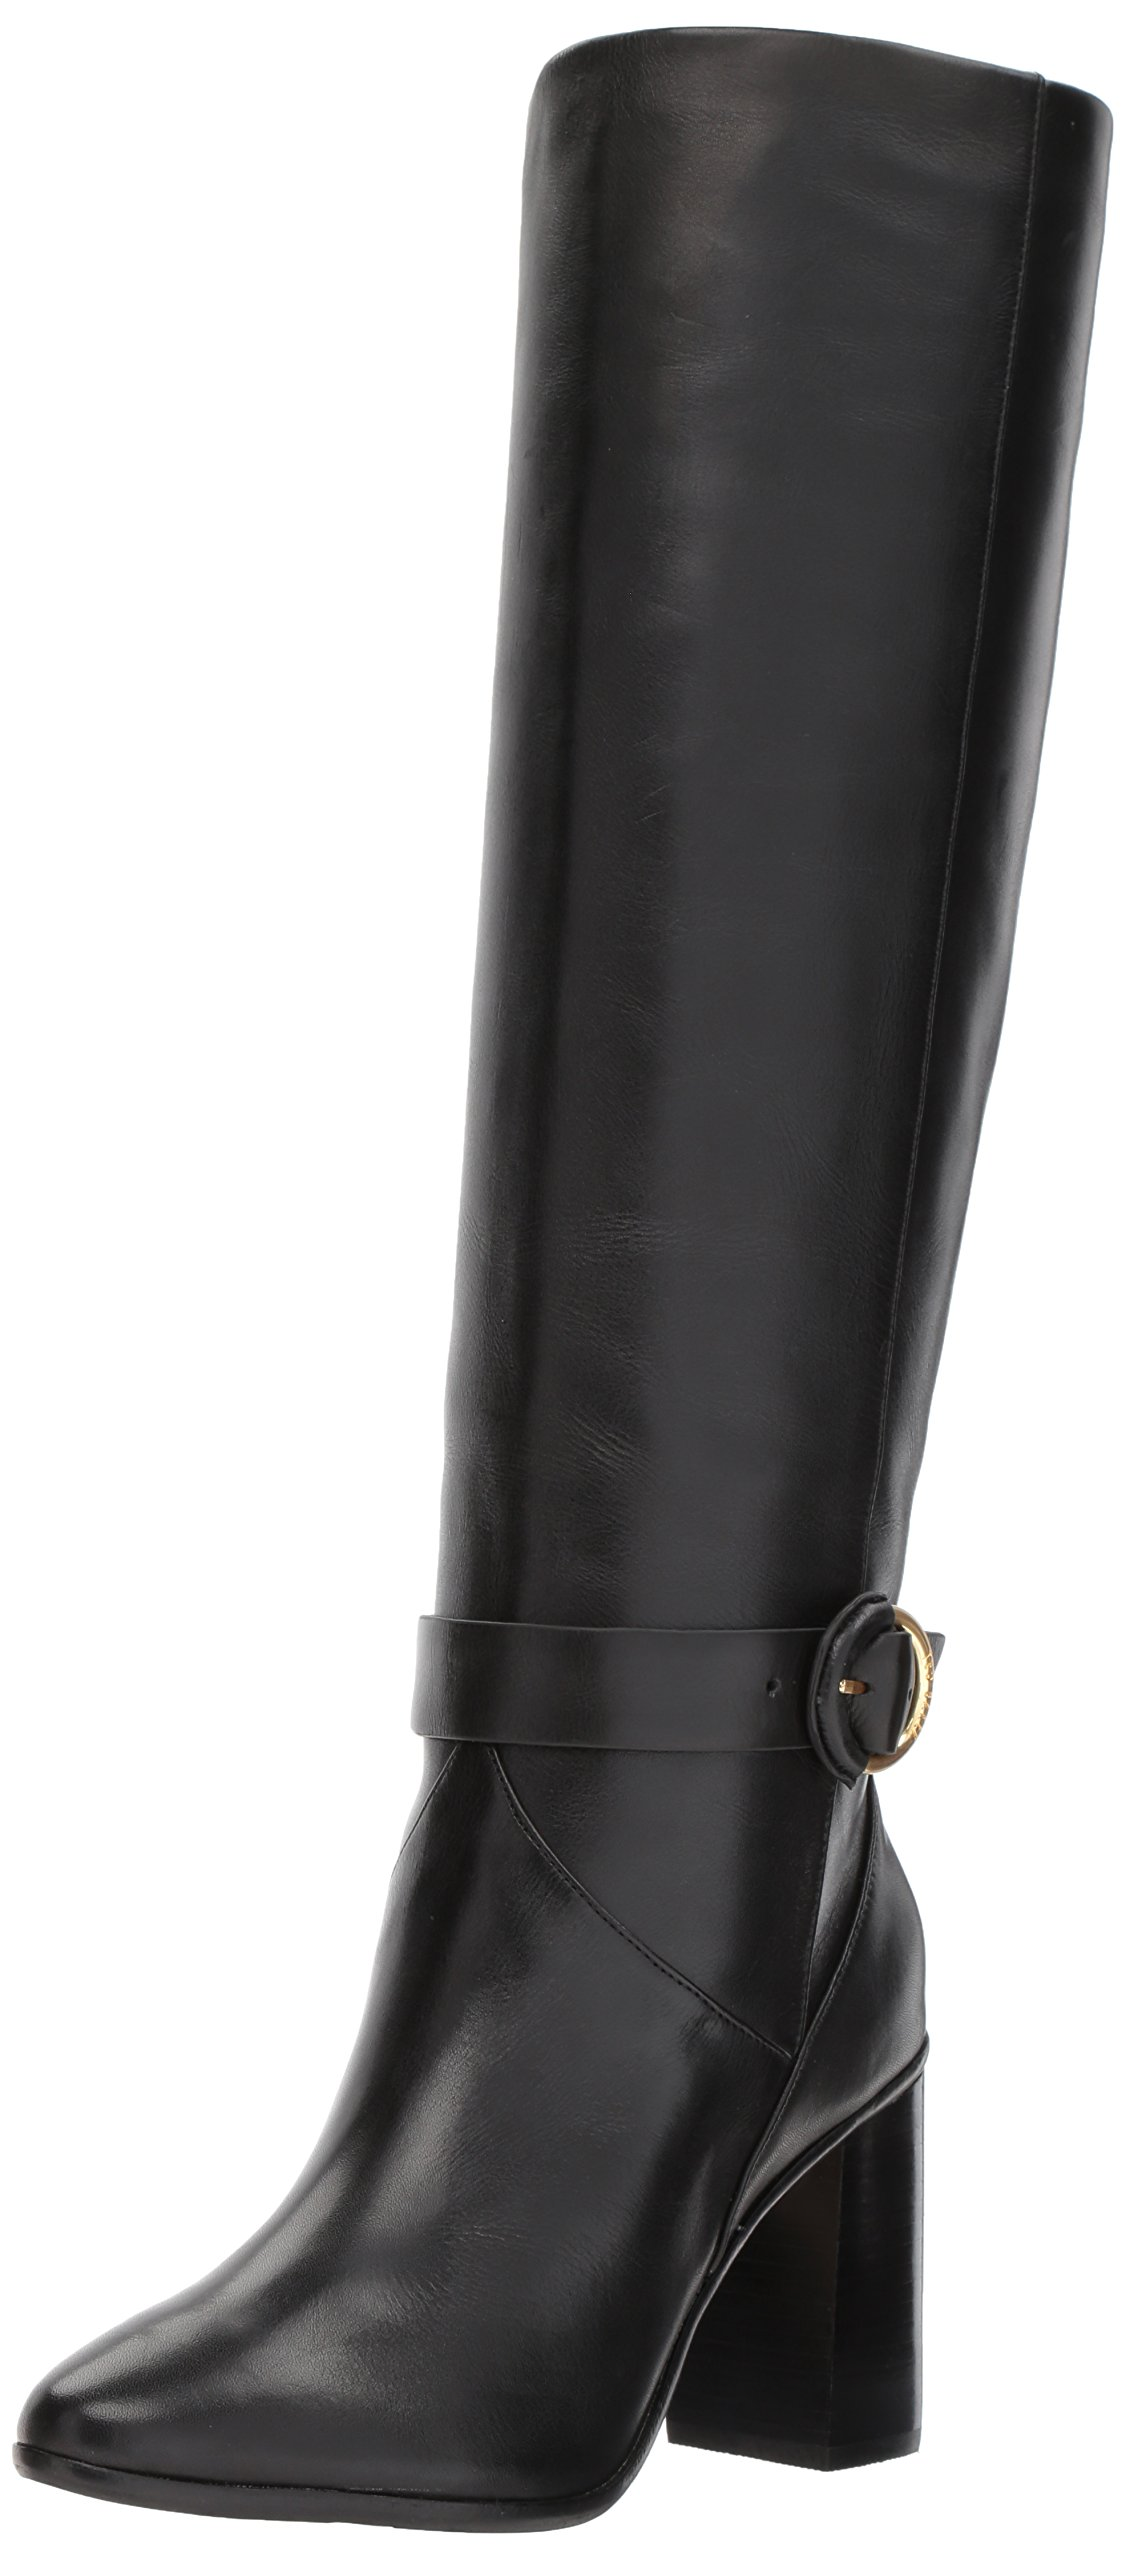 Ted Baker Women's Celsiar Fashion Boot, Black, 9 M US